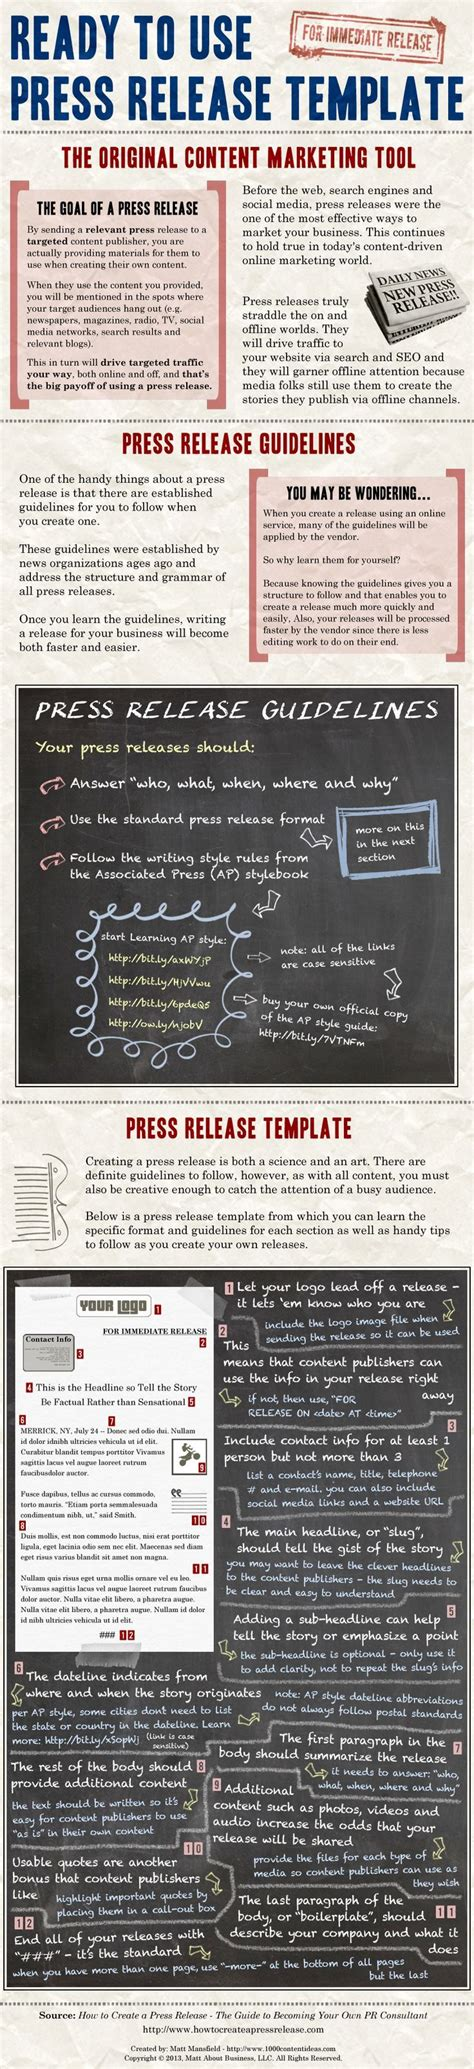 ready to edit templates sle 164 best business management images on